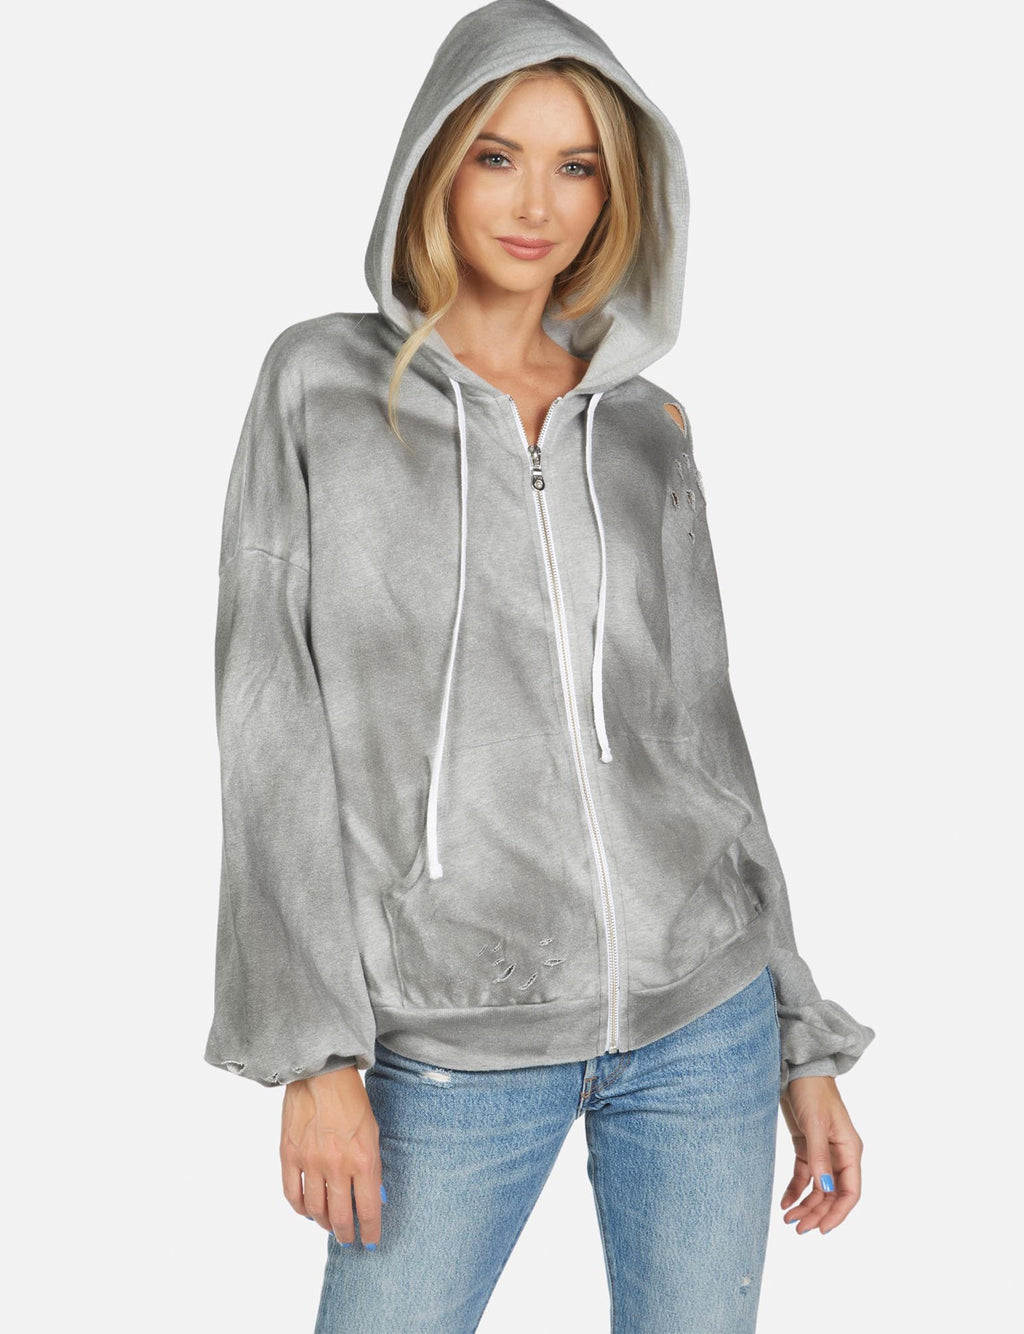 Hayworth Drop Shoulder Zip Hoodie in Oil Wash